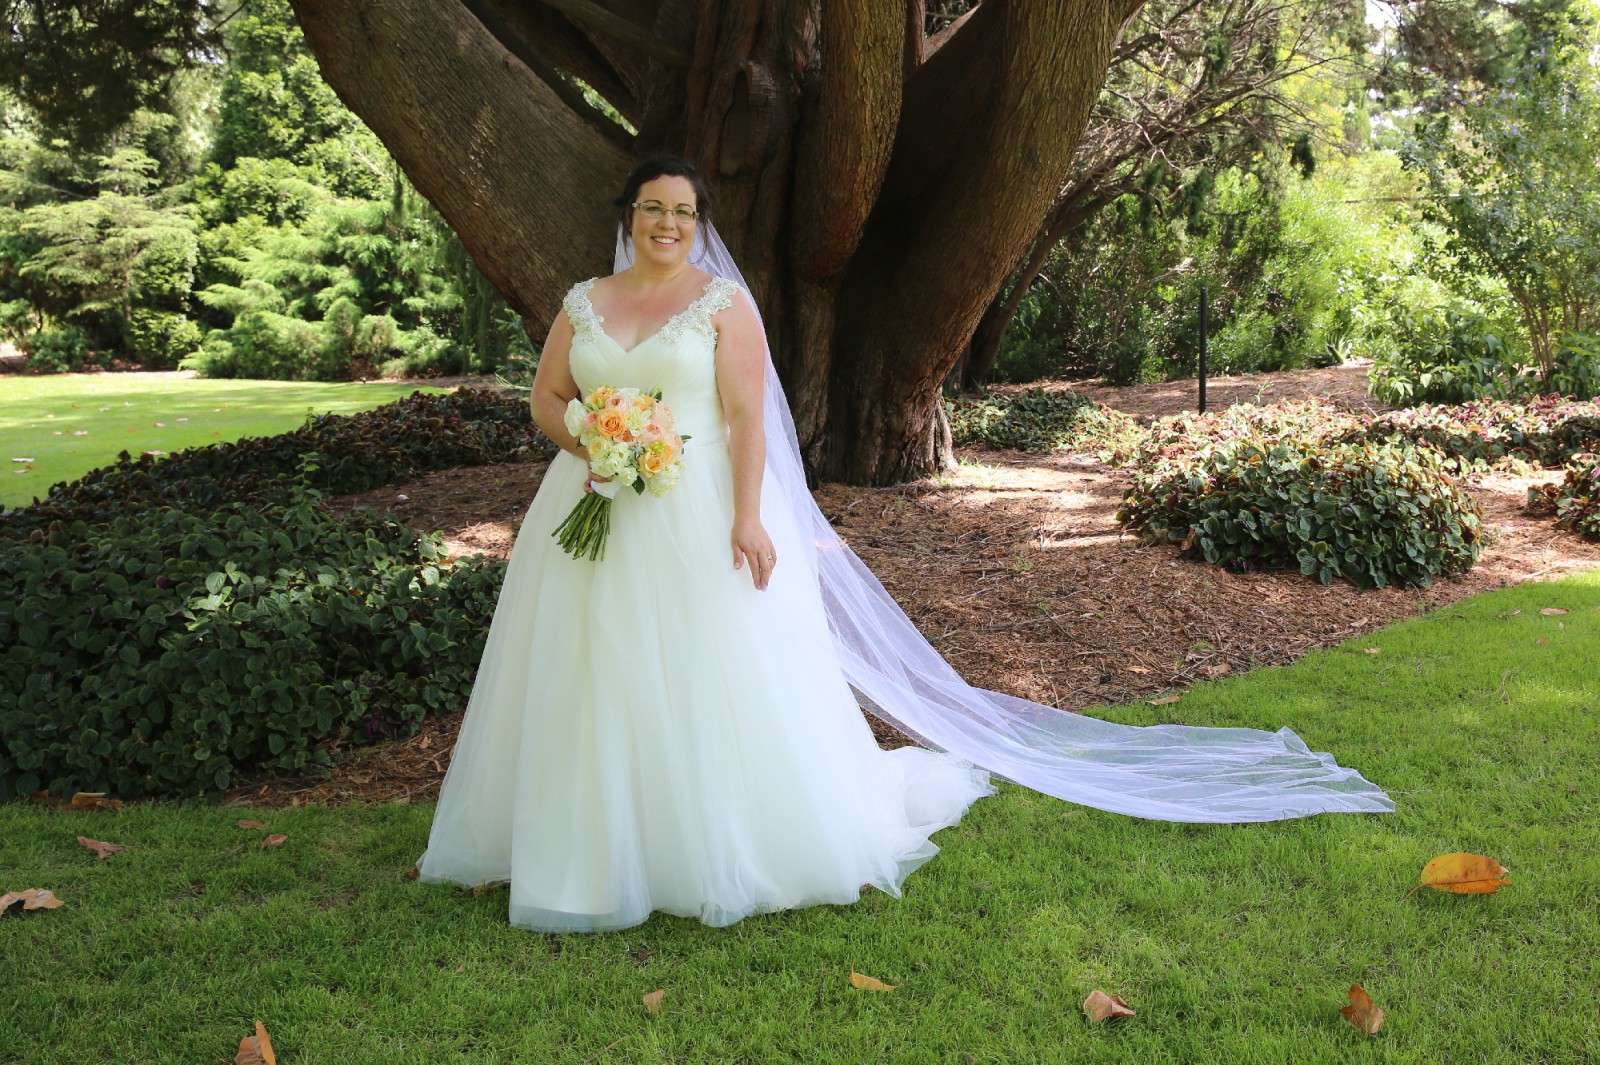 Cizzy Second Hand Wedding Dress On Sale 73% Off